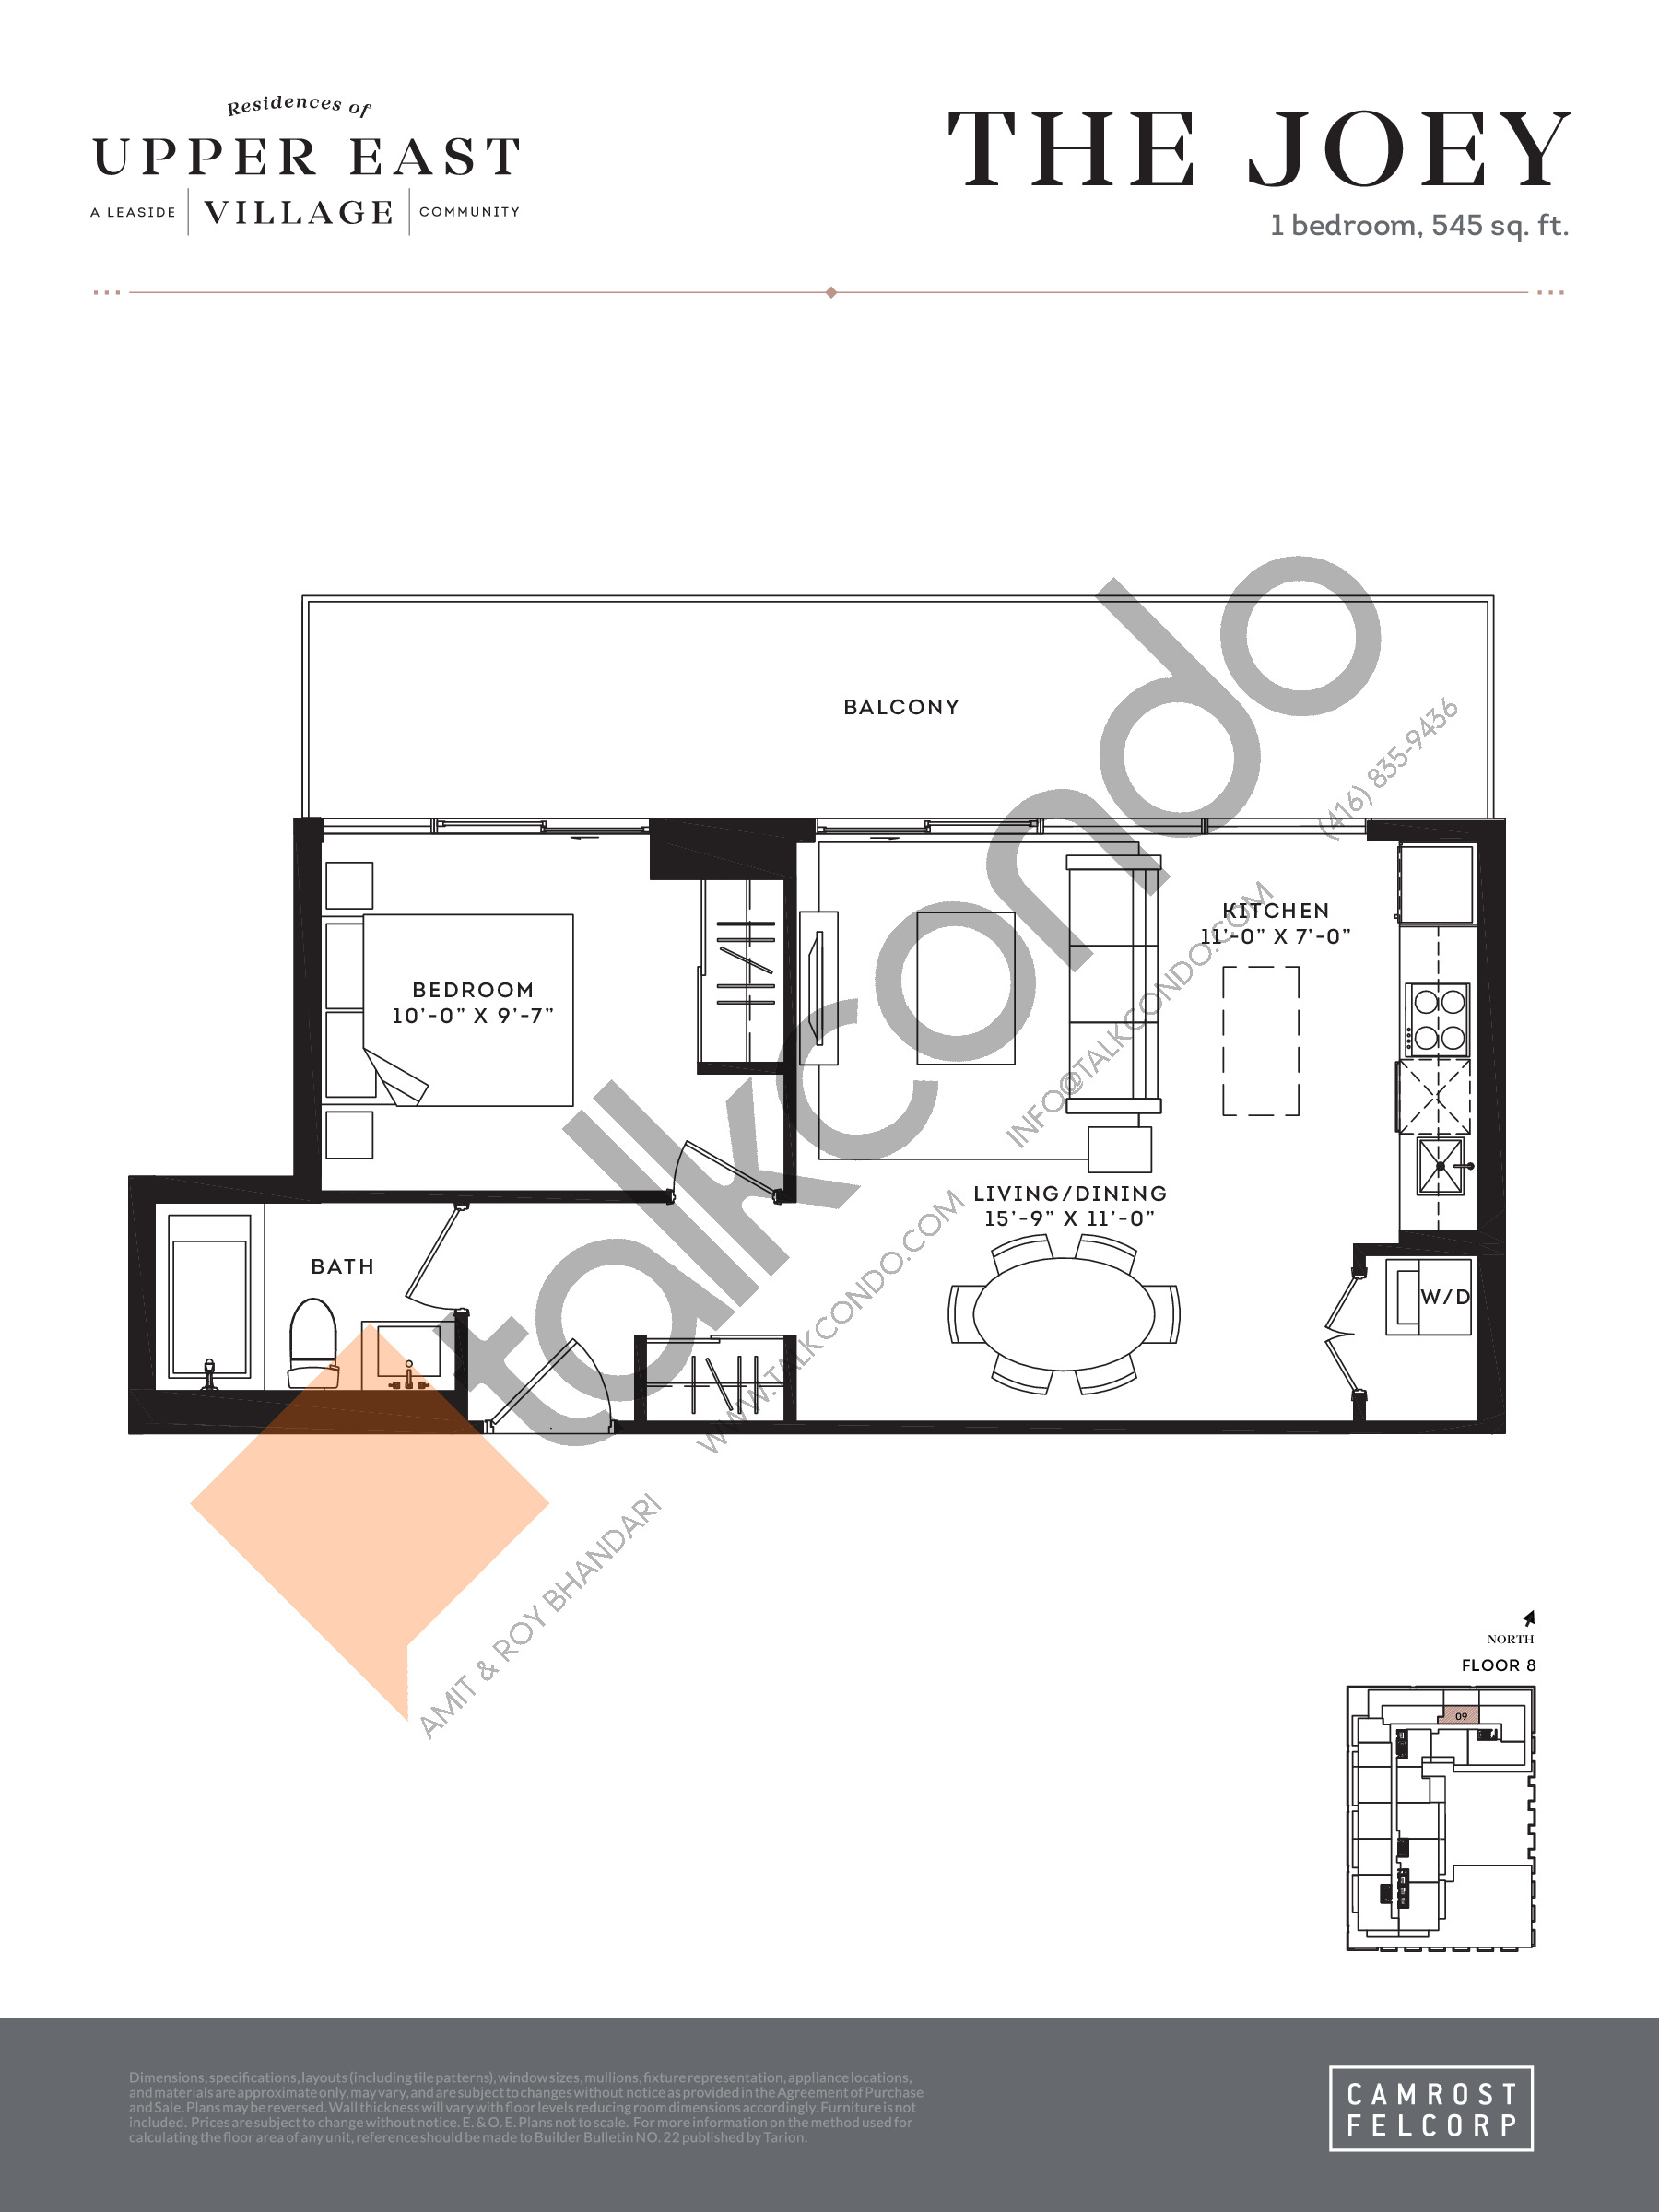 The Joey Floor Plan at Upper East Village Condos - 545 sq.ft